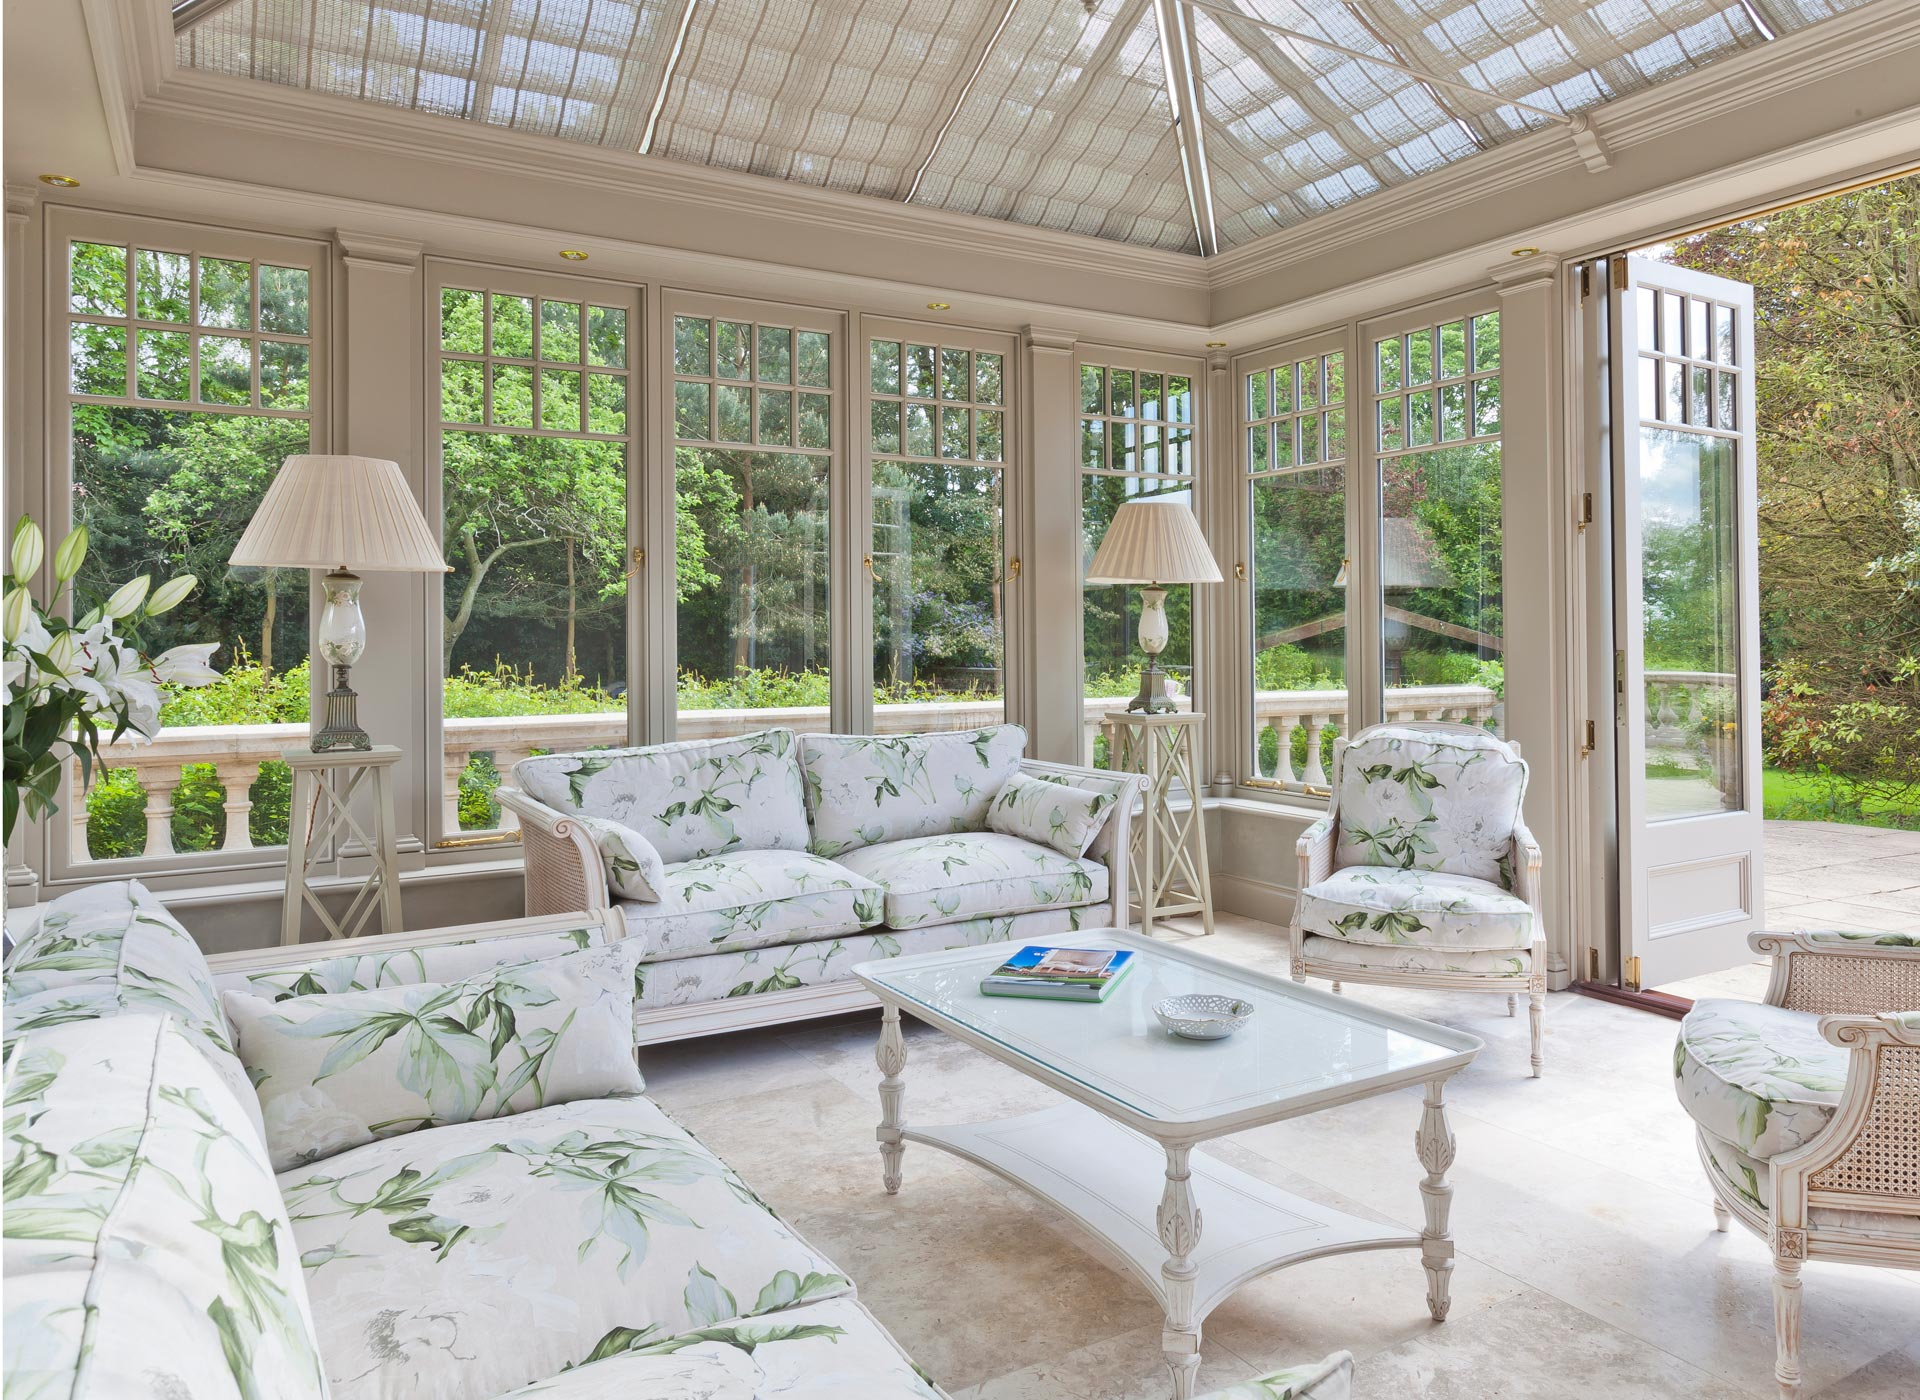 Conservatory furniture interiors by vale for Orangery interior design ideas